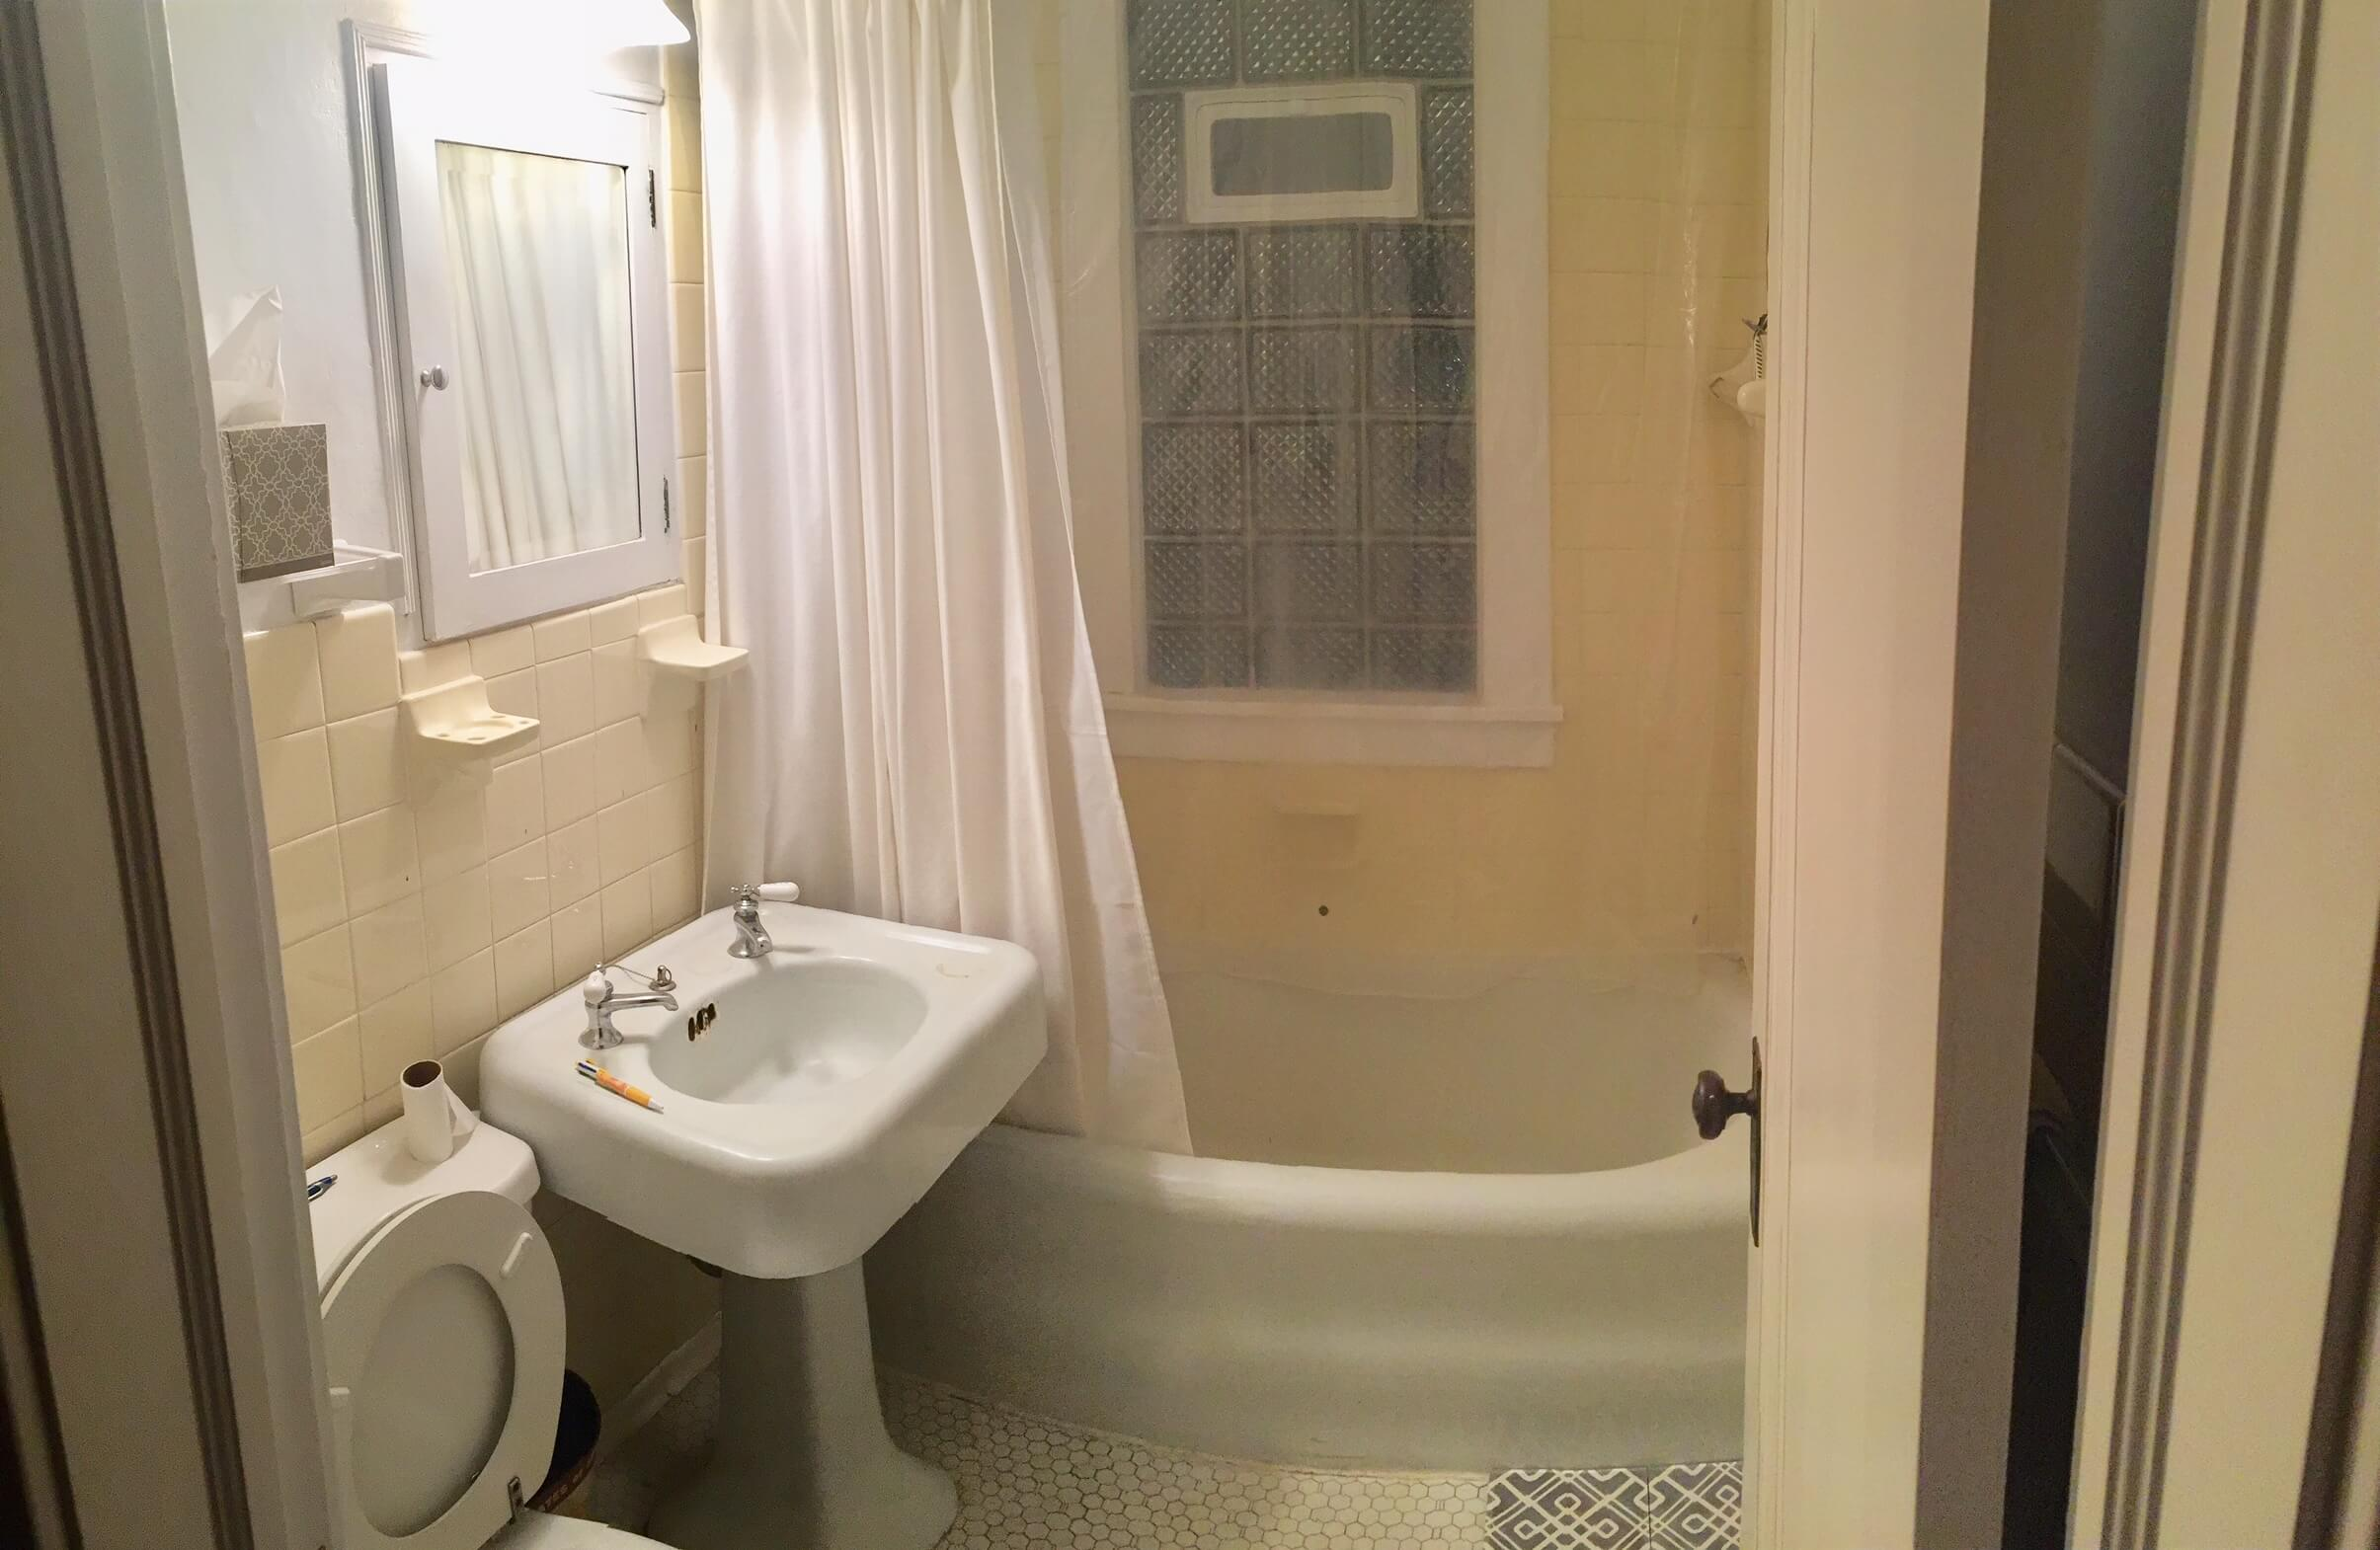 BEFORE pic of bathroom to be remodeled